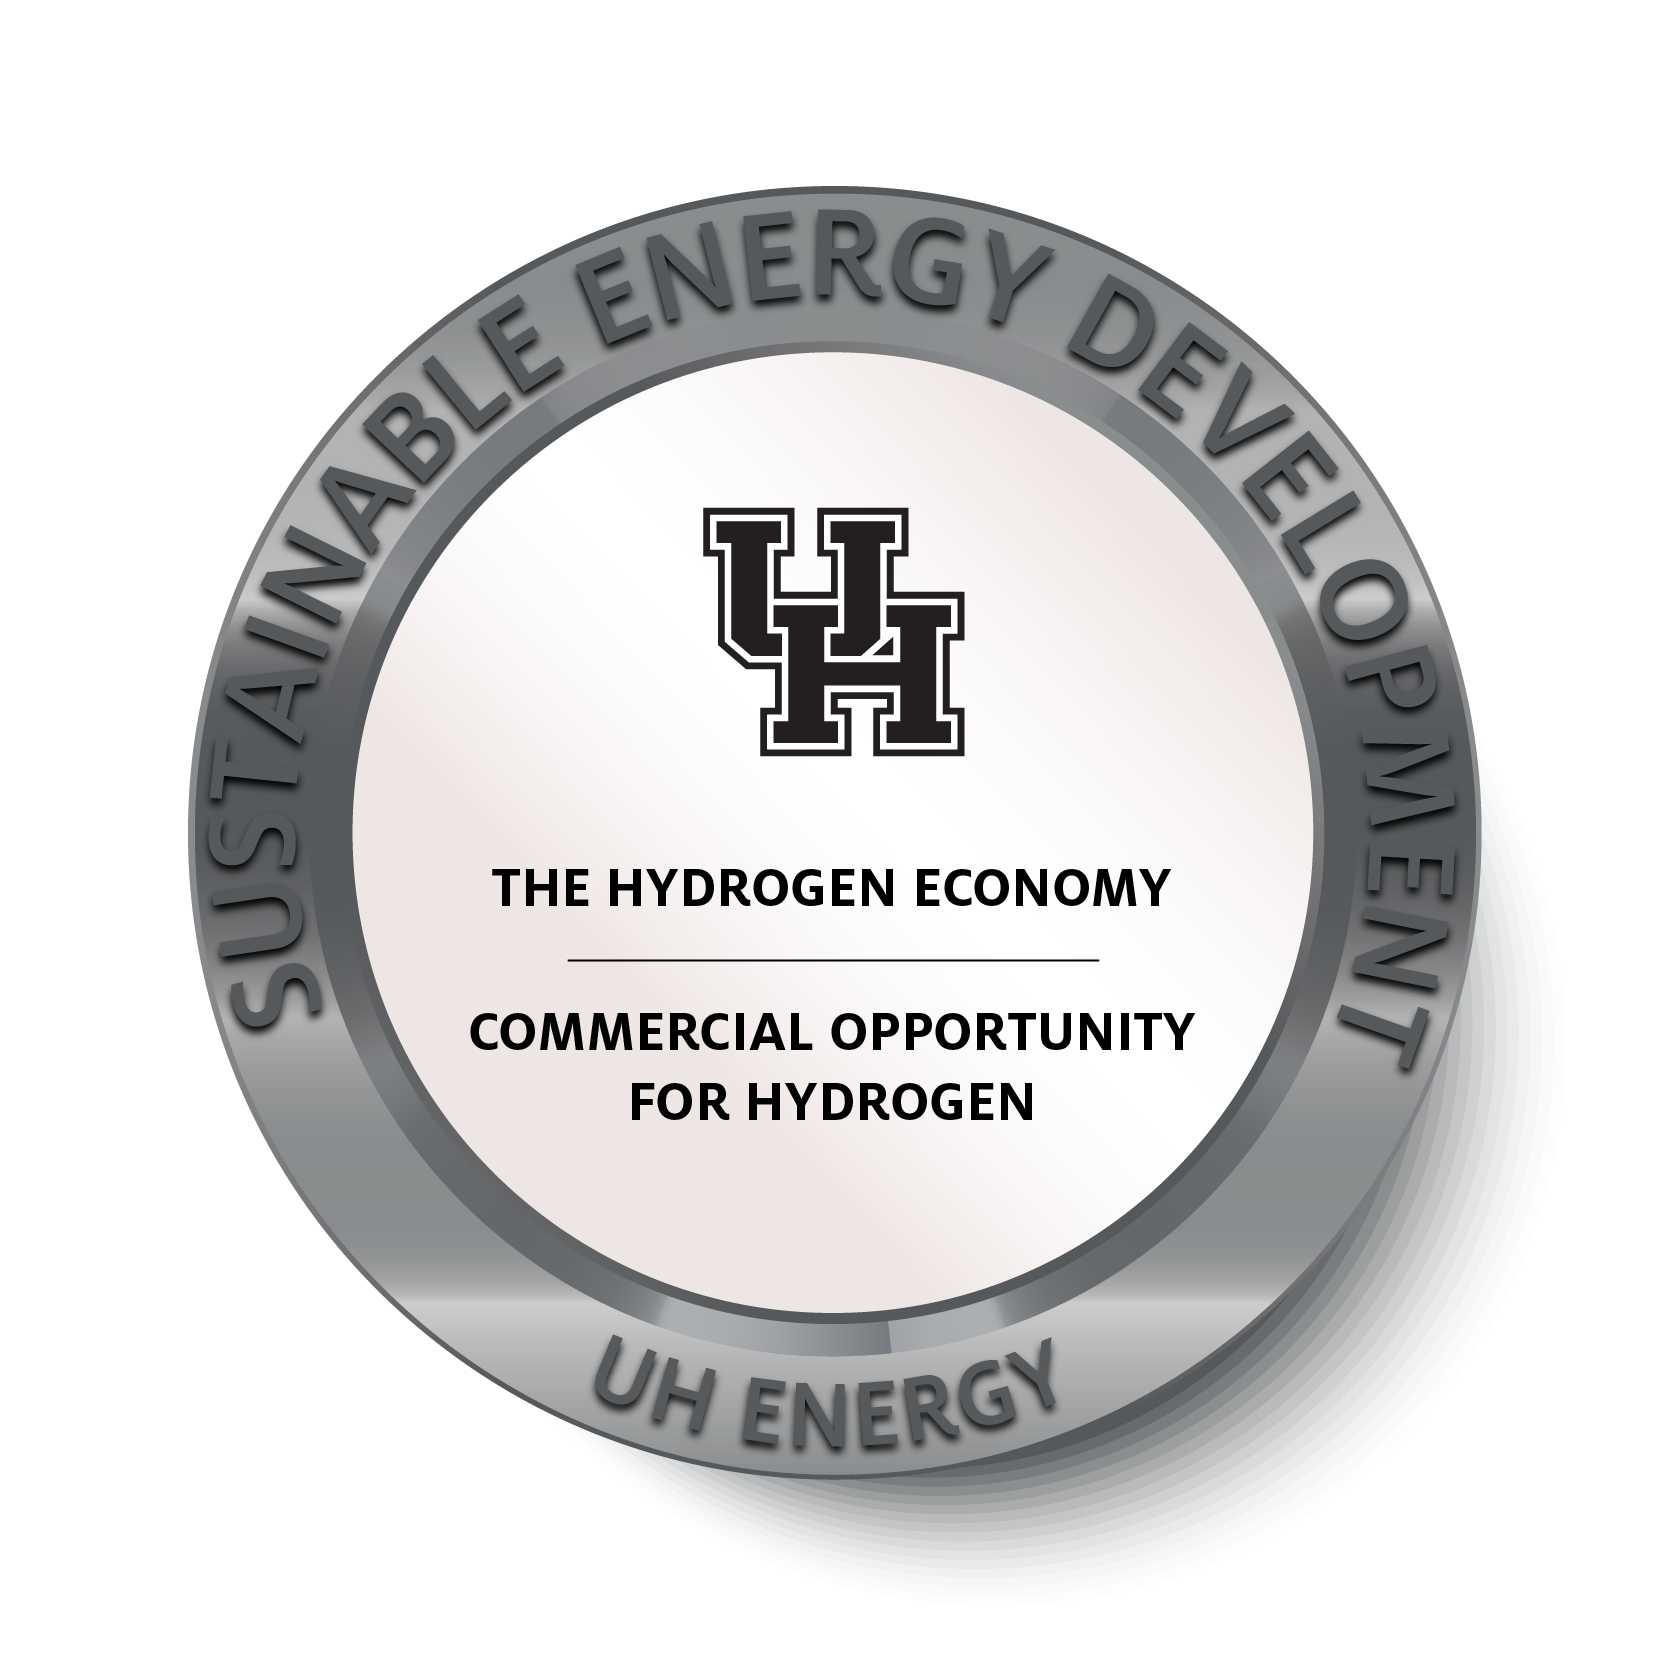 Commercial Opportunity for Hydrogen Badge Image